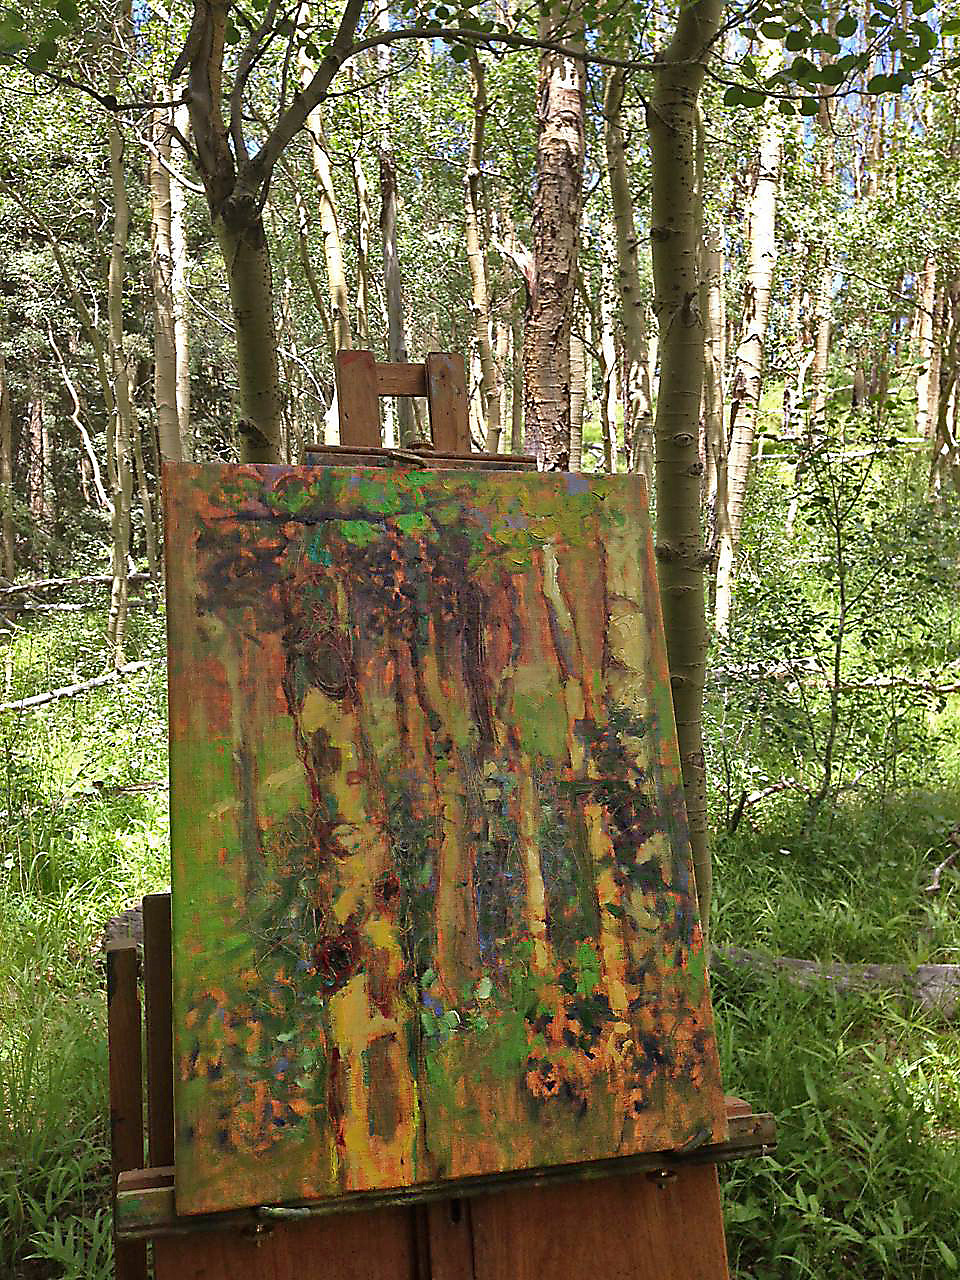 Rick made it up to the aspens to continue this series paintings